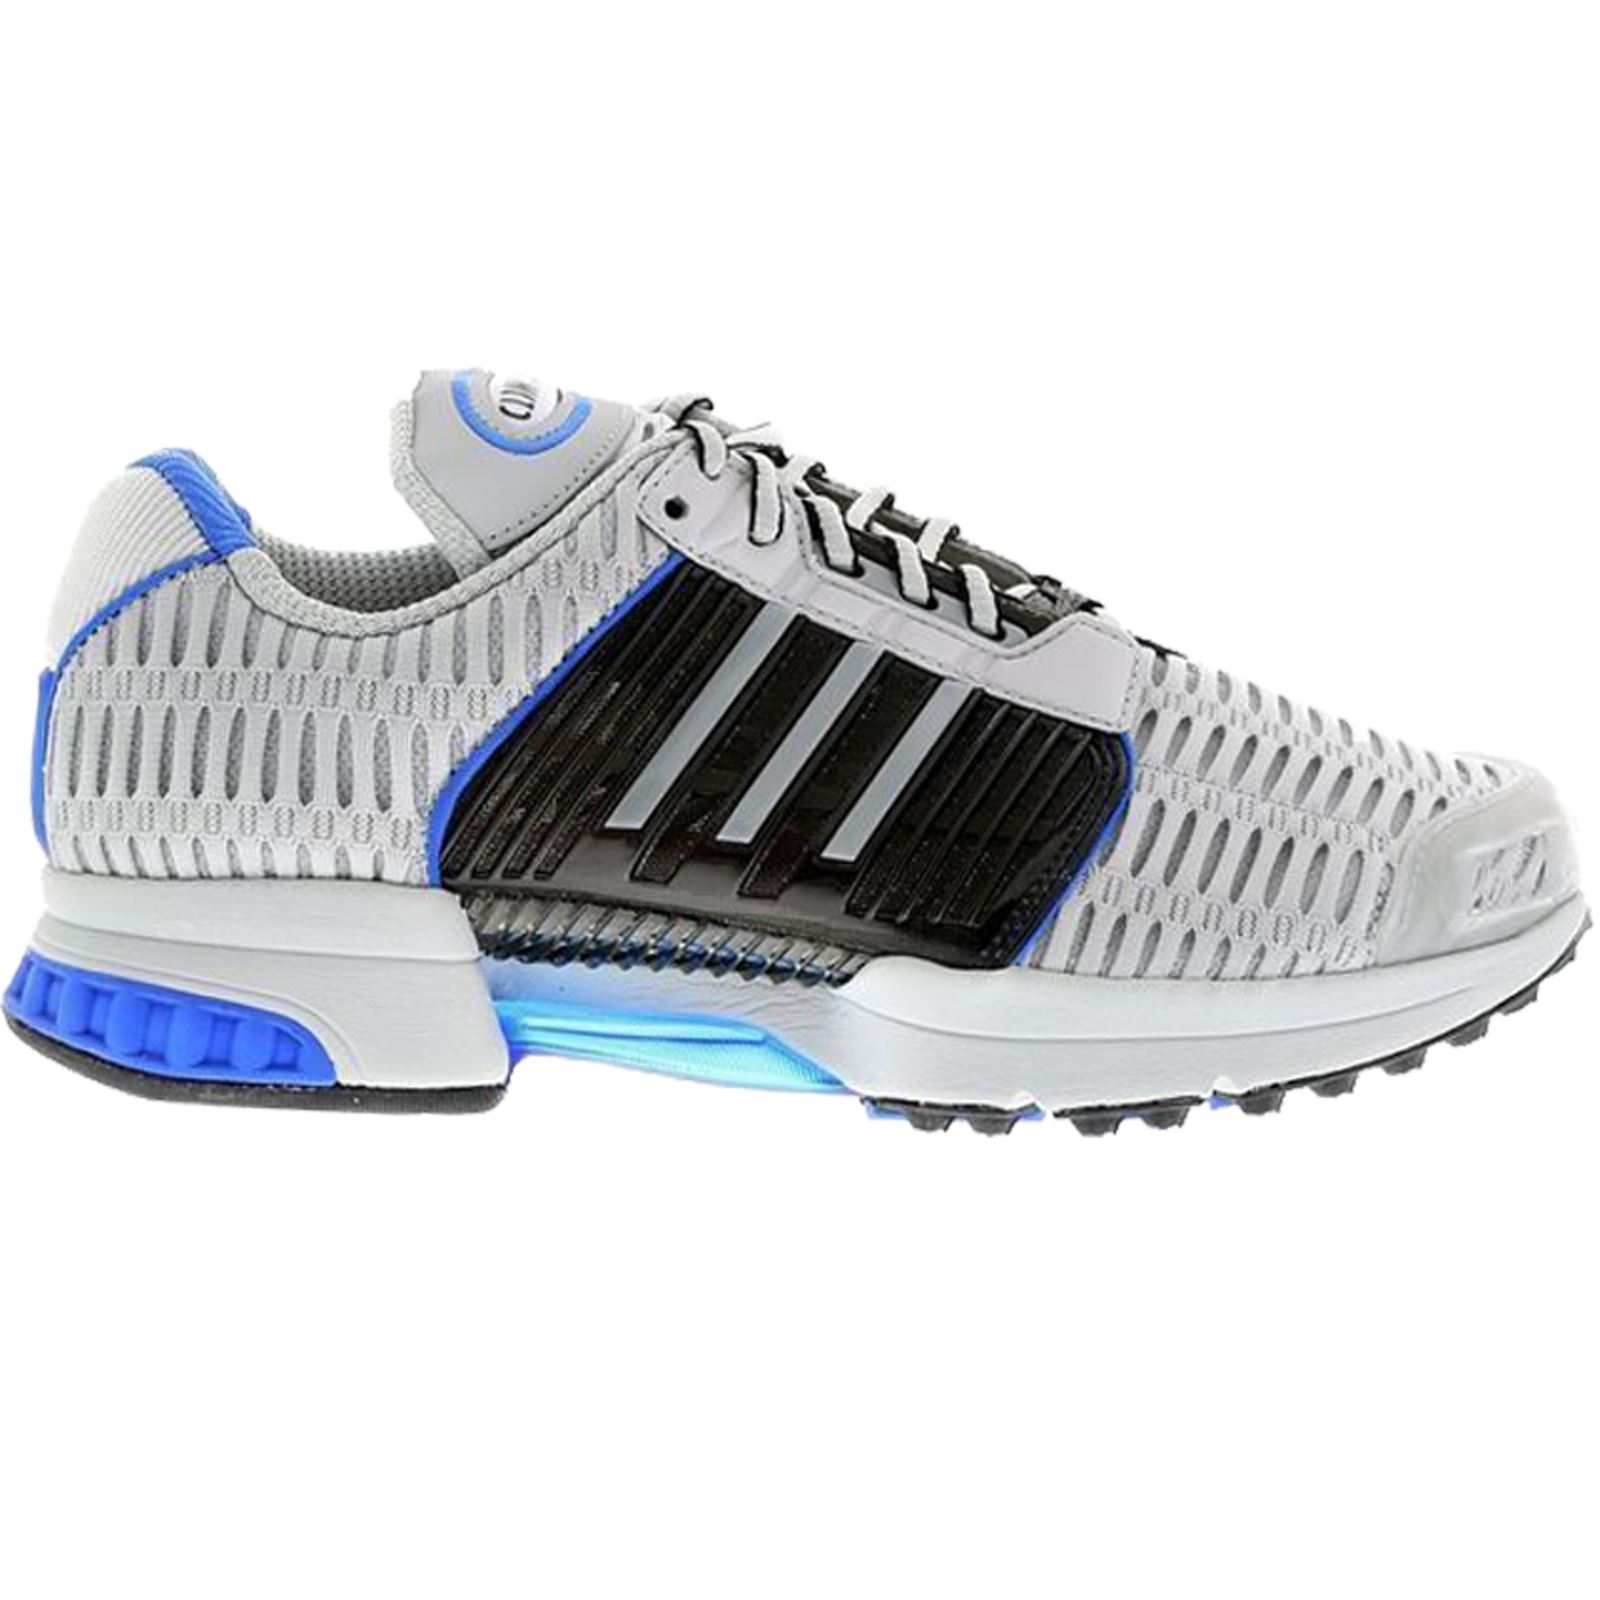 Adidas Originals clima Cool 1 hombre  bb0539 corriendo Trainers Sneakers